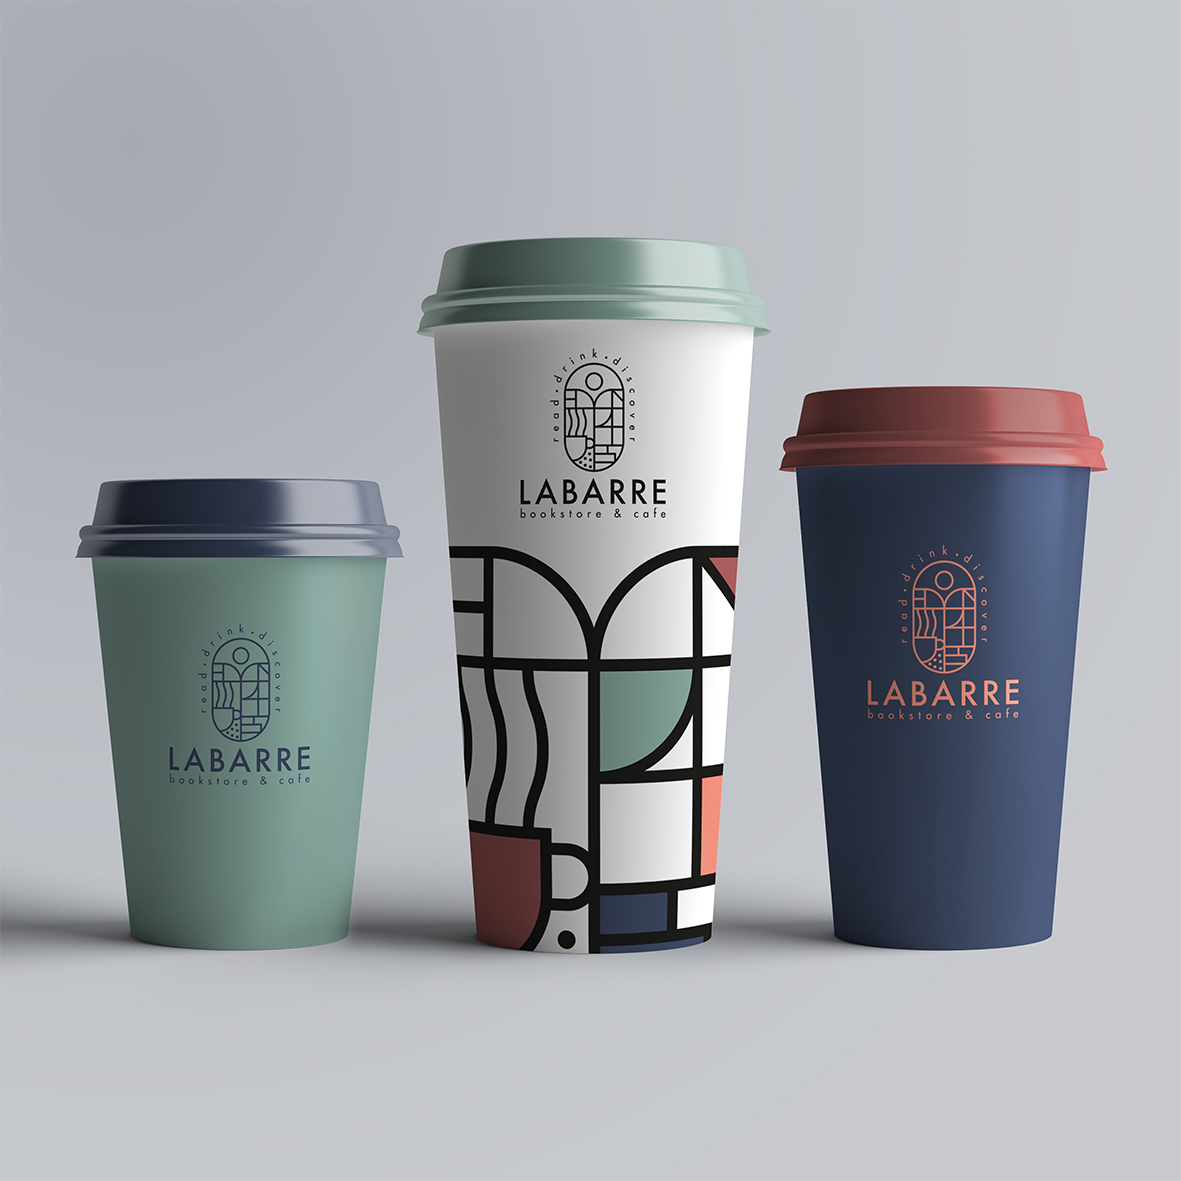 labarre_bookstore_cafe_identity_cup_papercup_takeaway